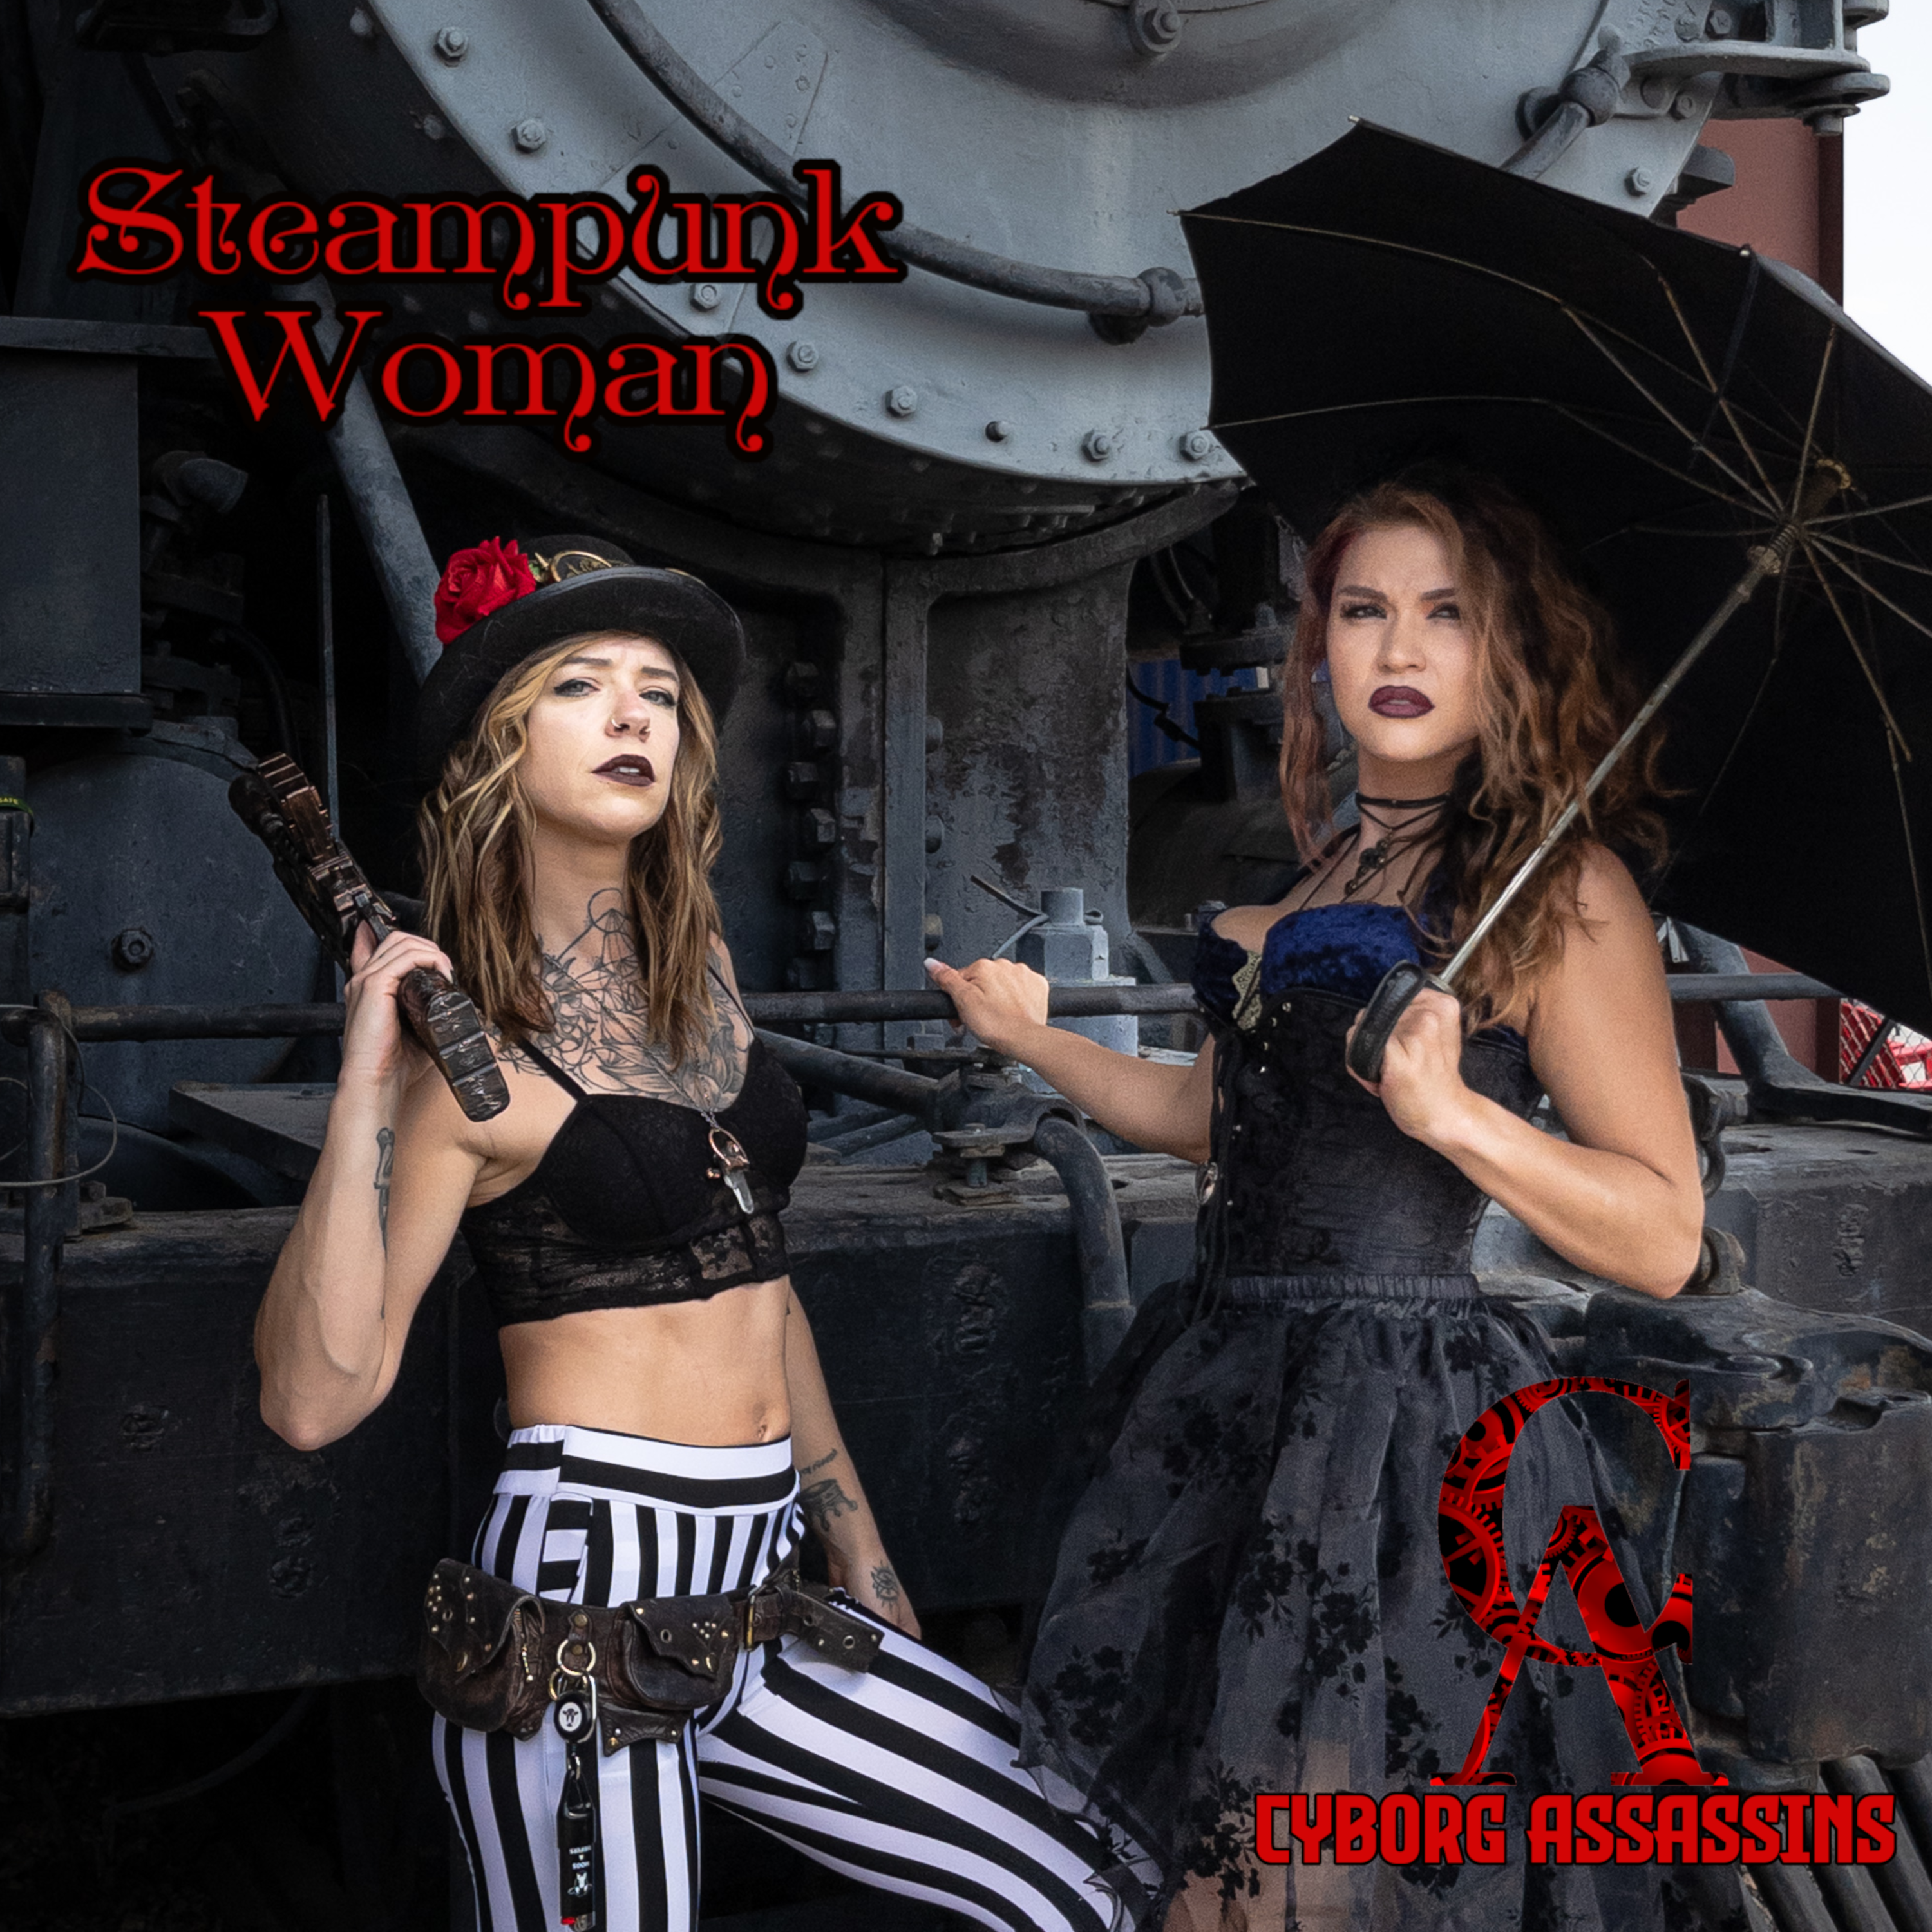 Cover art for Steampunk Woman by Cyborg Assassins